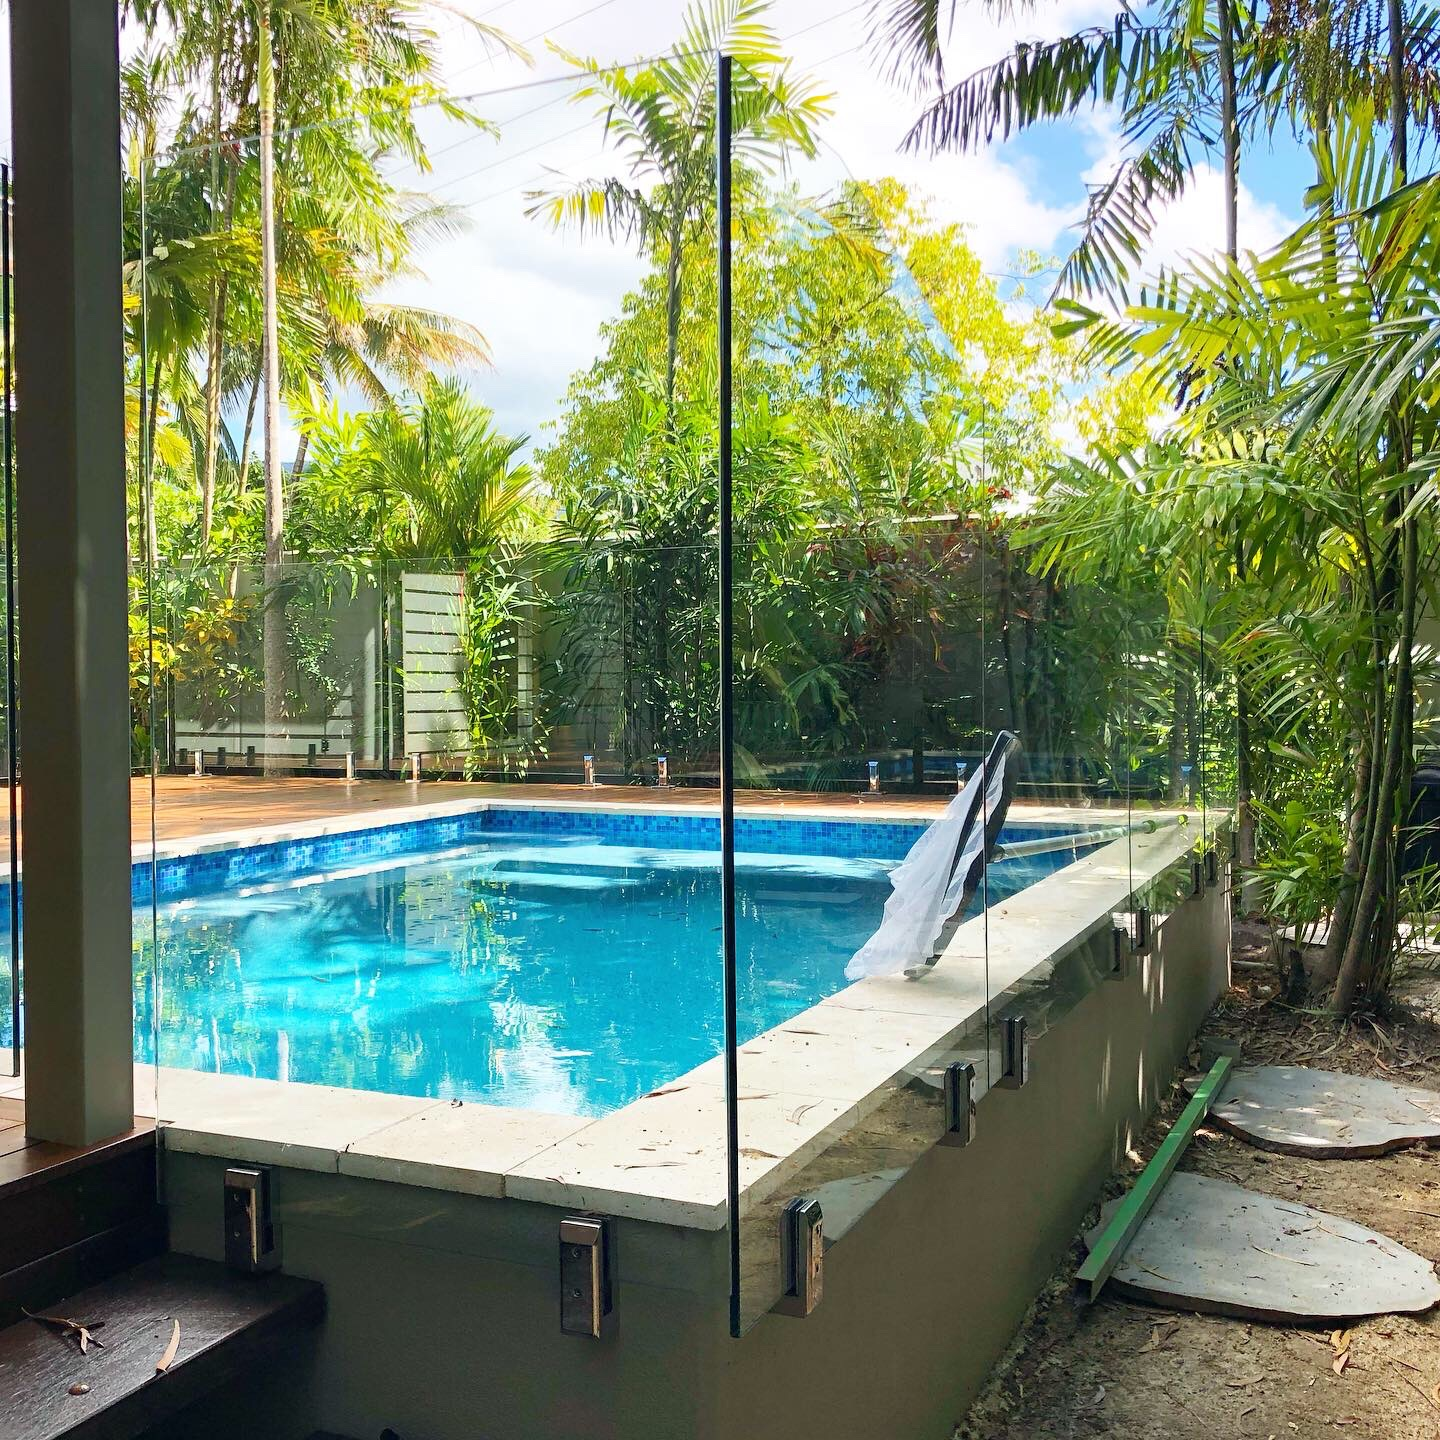 Wall mounted stainless spigots, fully frameless glass pool fencing, Cairns